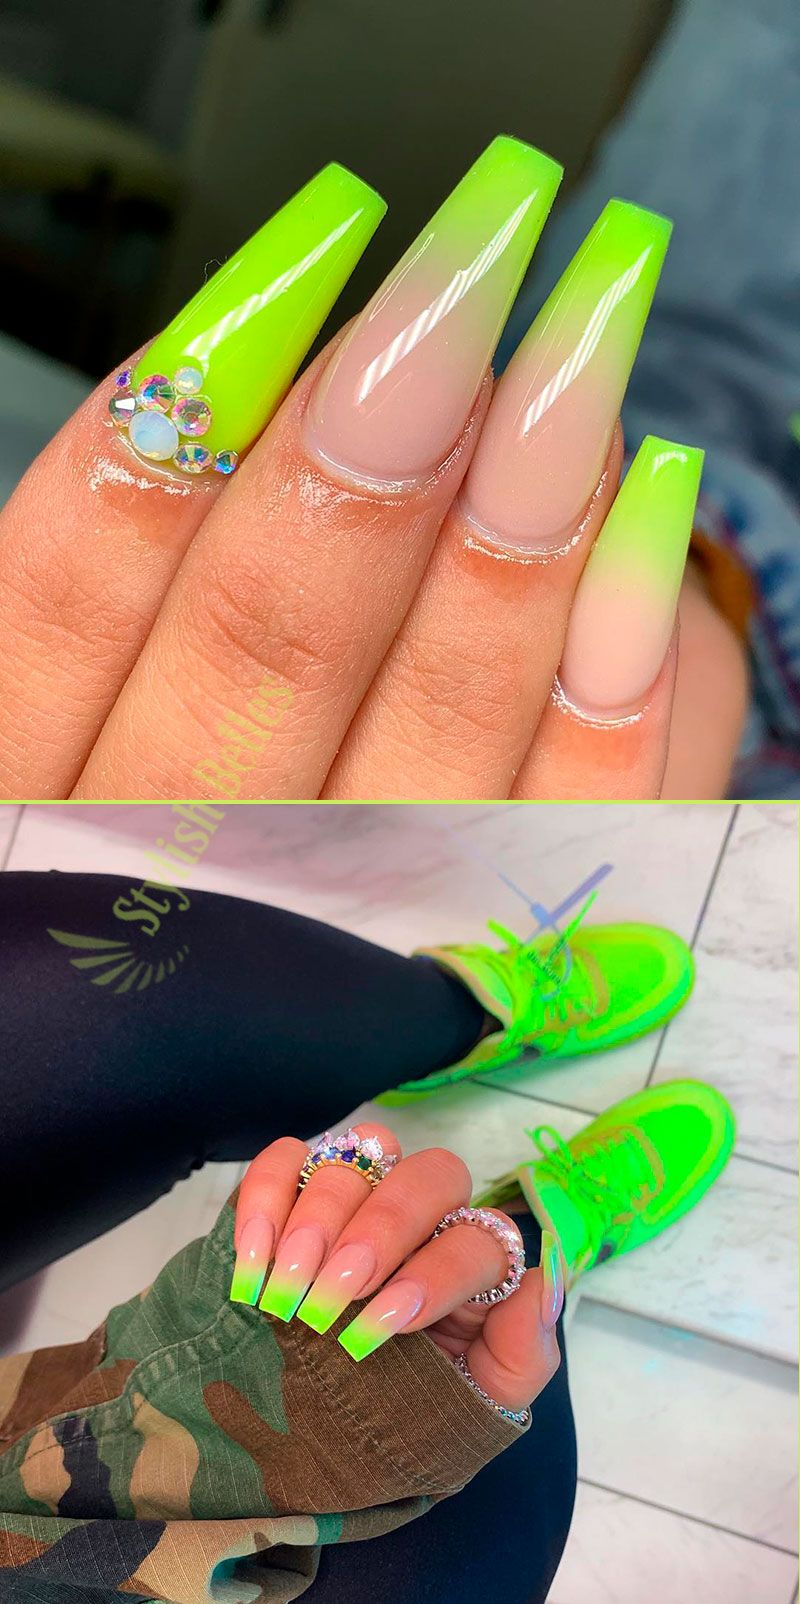 Awesome Ombre Yellow Nails Coffin Shaped For Summer 2019 Yellow Nails Coffin Shape Nails Wedding Nail Polish